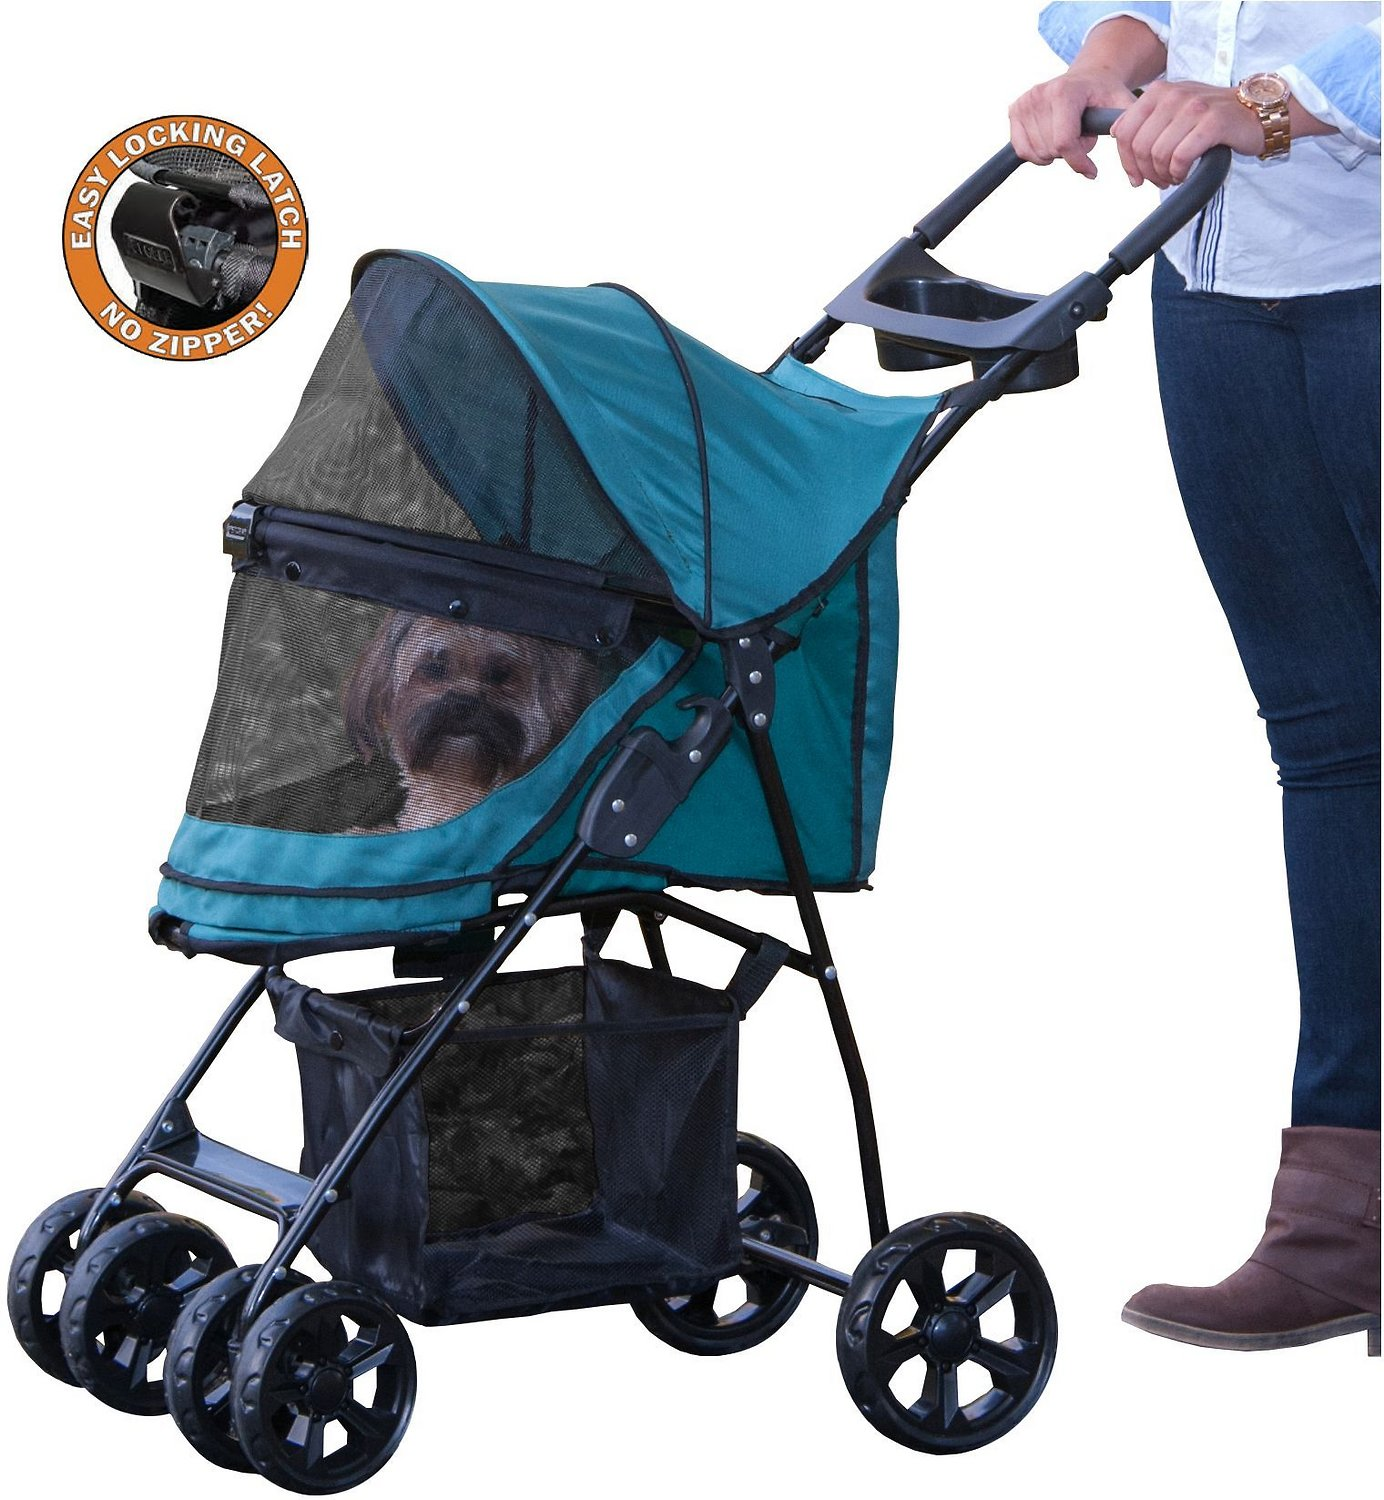 Pet Gear Happy Trails Lite No-Zip Pet Stroller, Pine Green ...